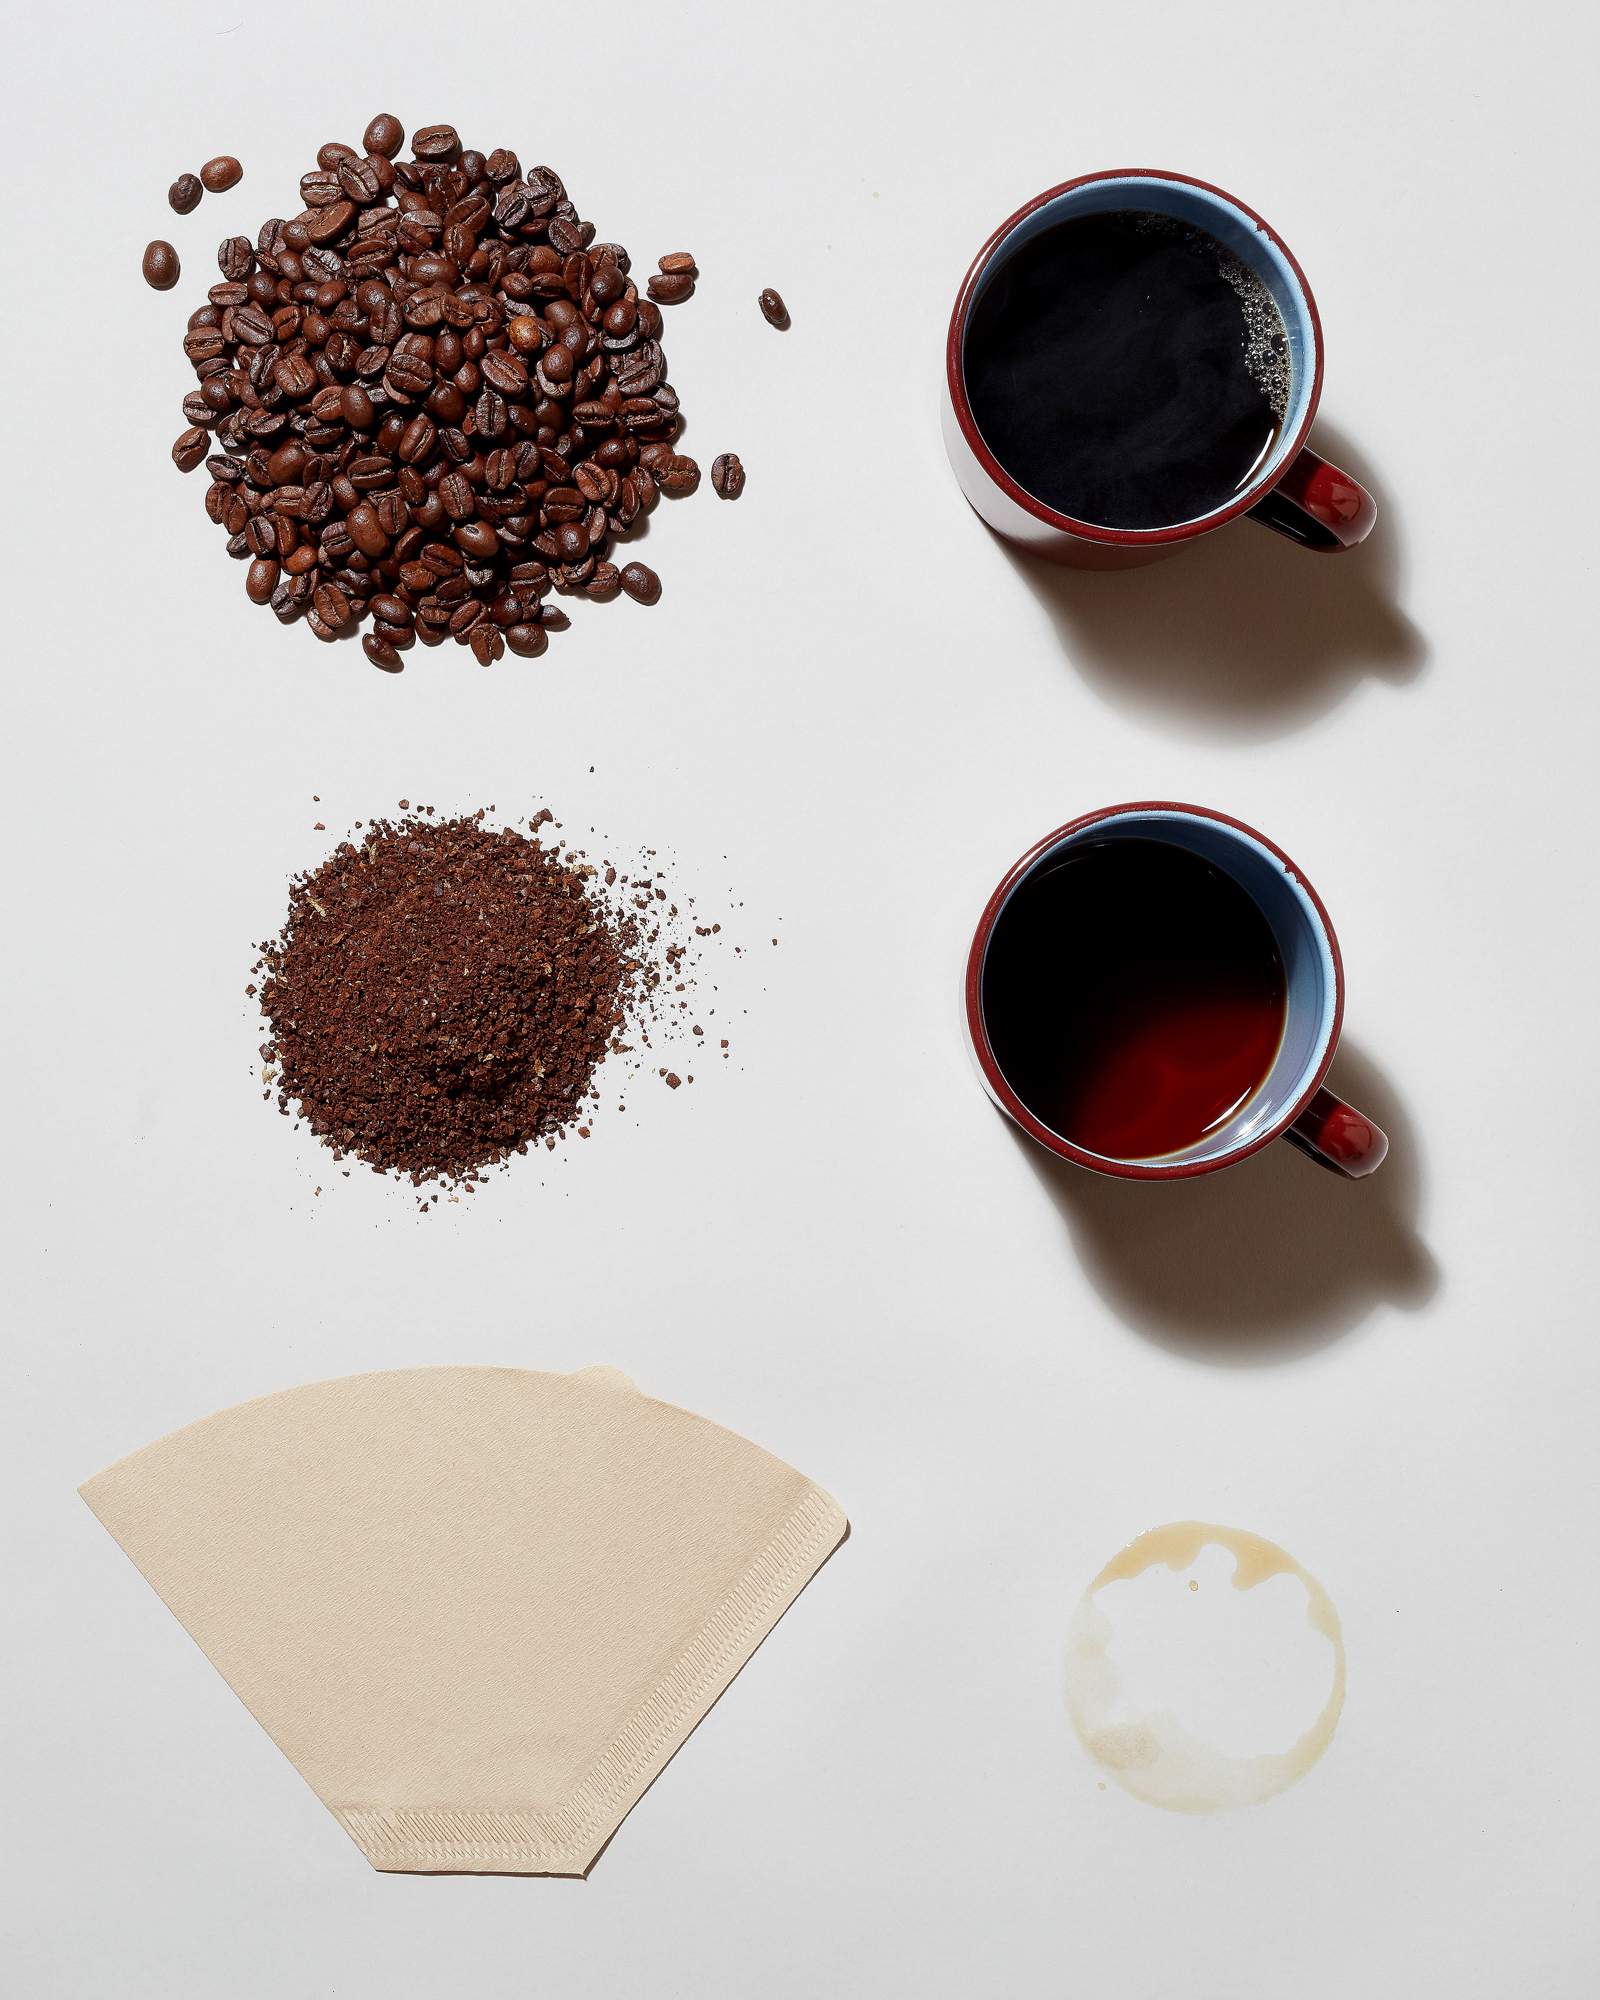 deconstructed pour over coffee photograph for advertising